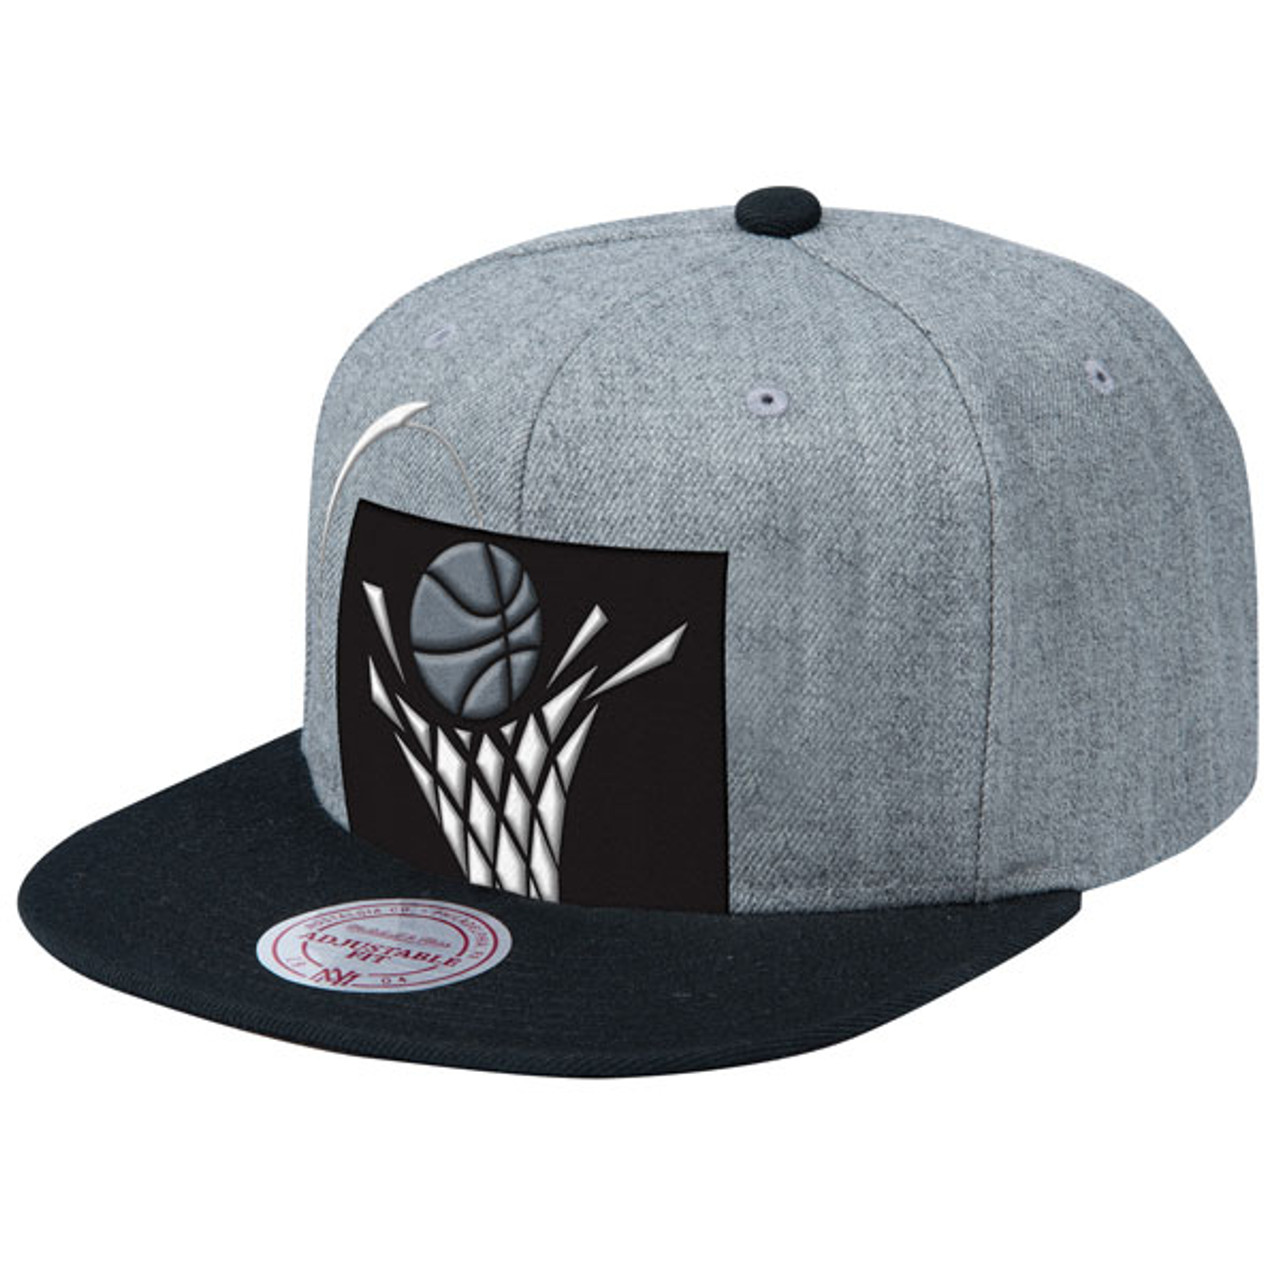 06a2d4461c8 90s Logo Tonal Snapback by Mitchell   Ness